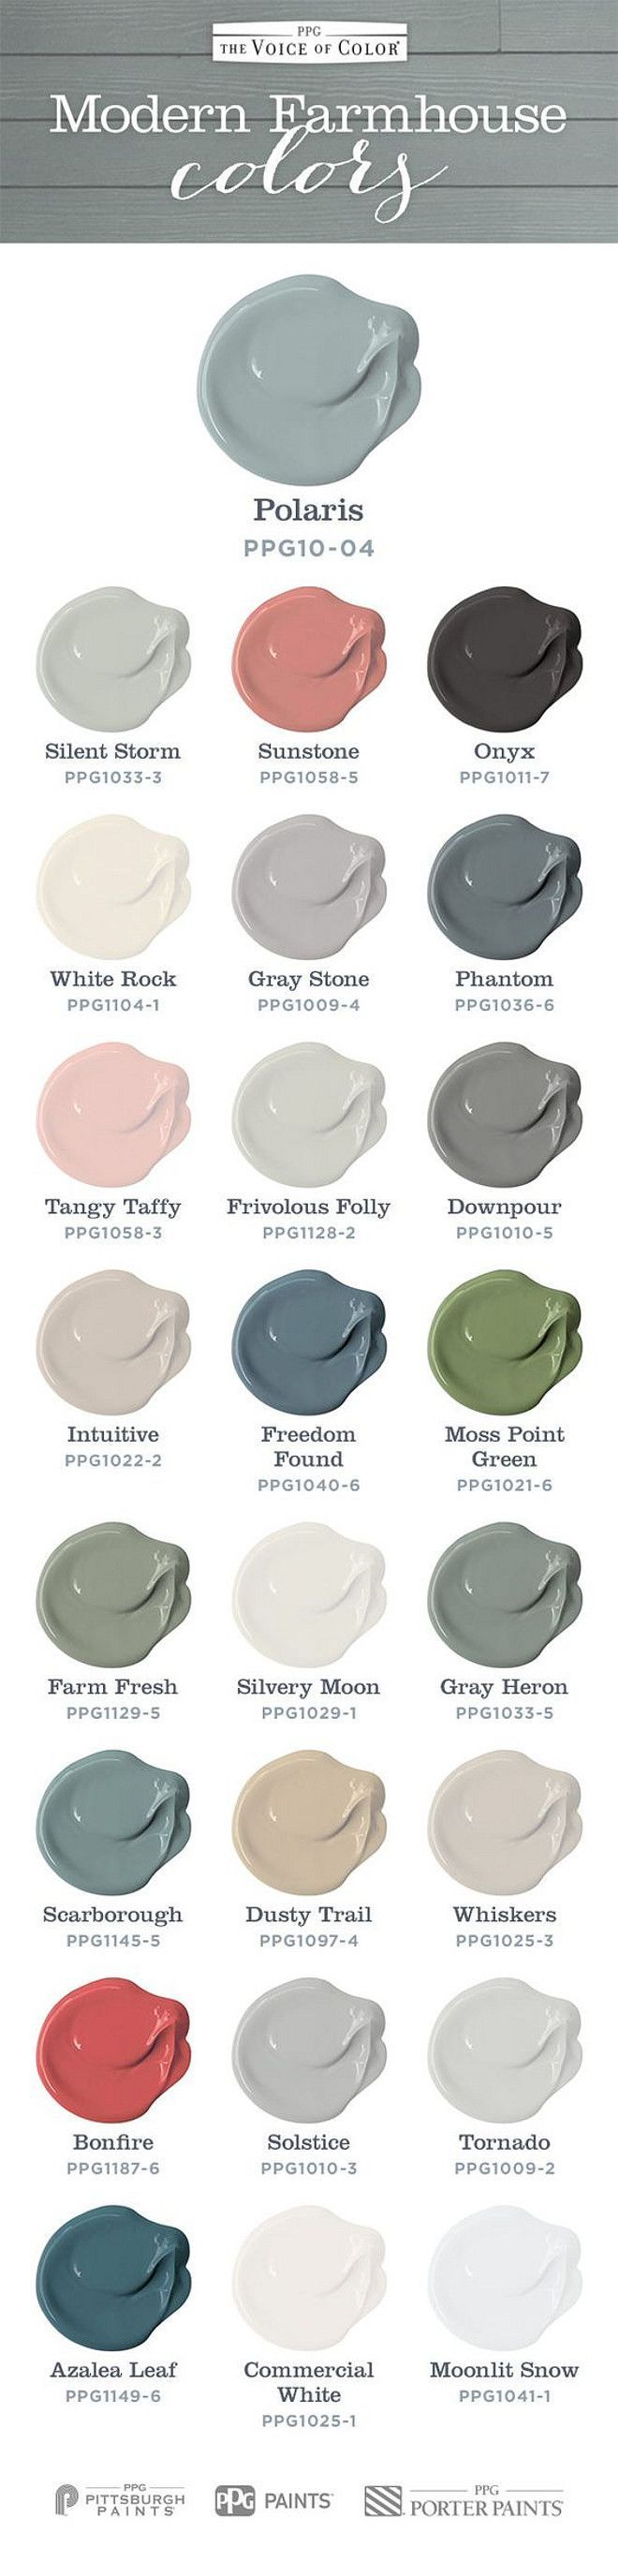 awesome Pittsburg Paint-Farmhouse Paint Color. Farmhouse color scheme and paint colors f...